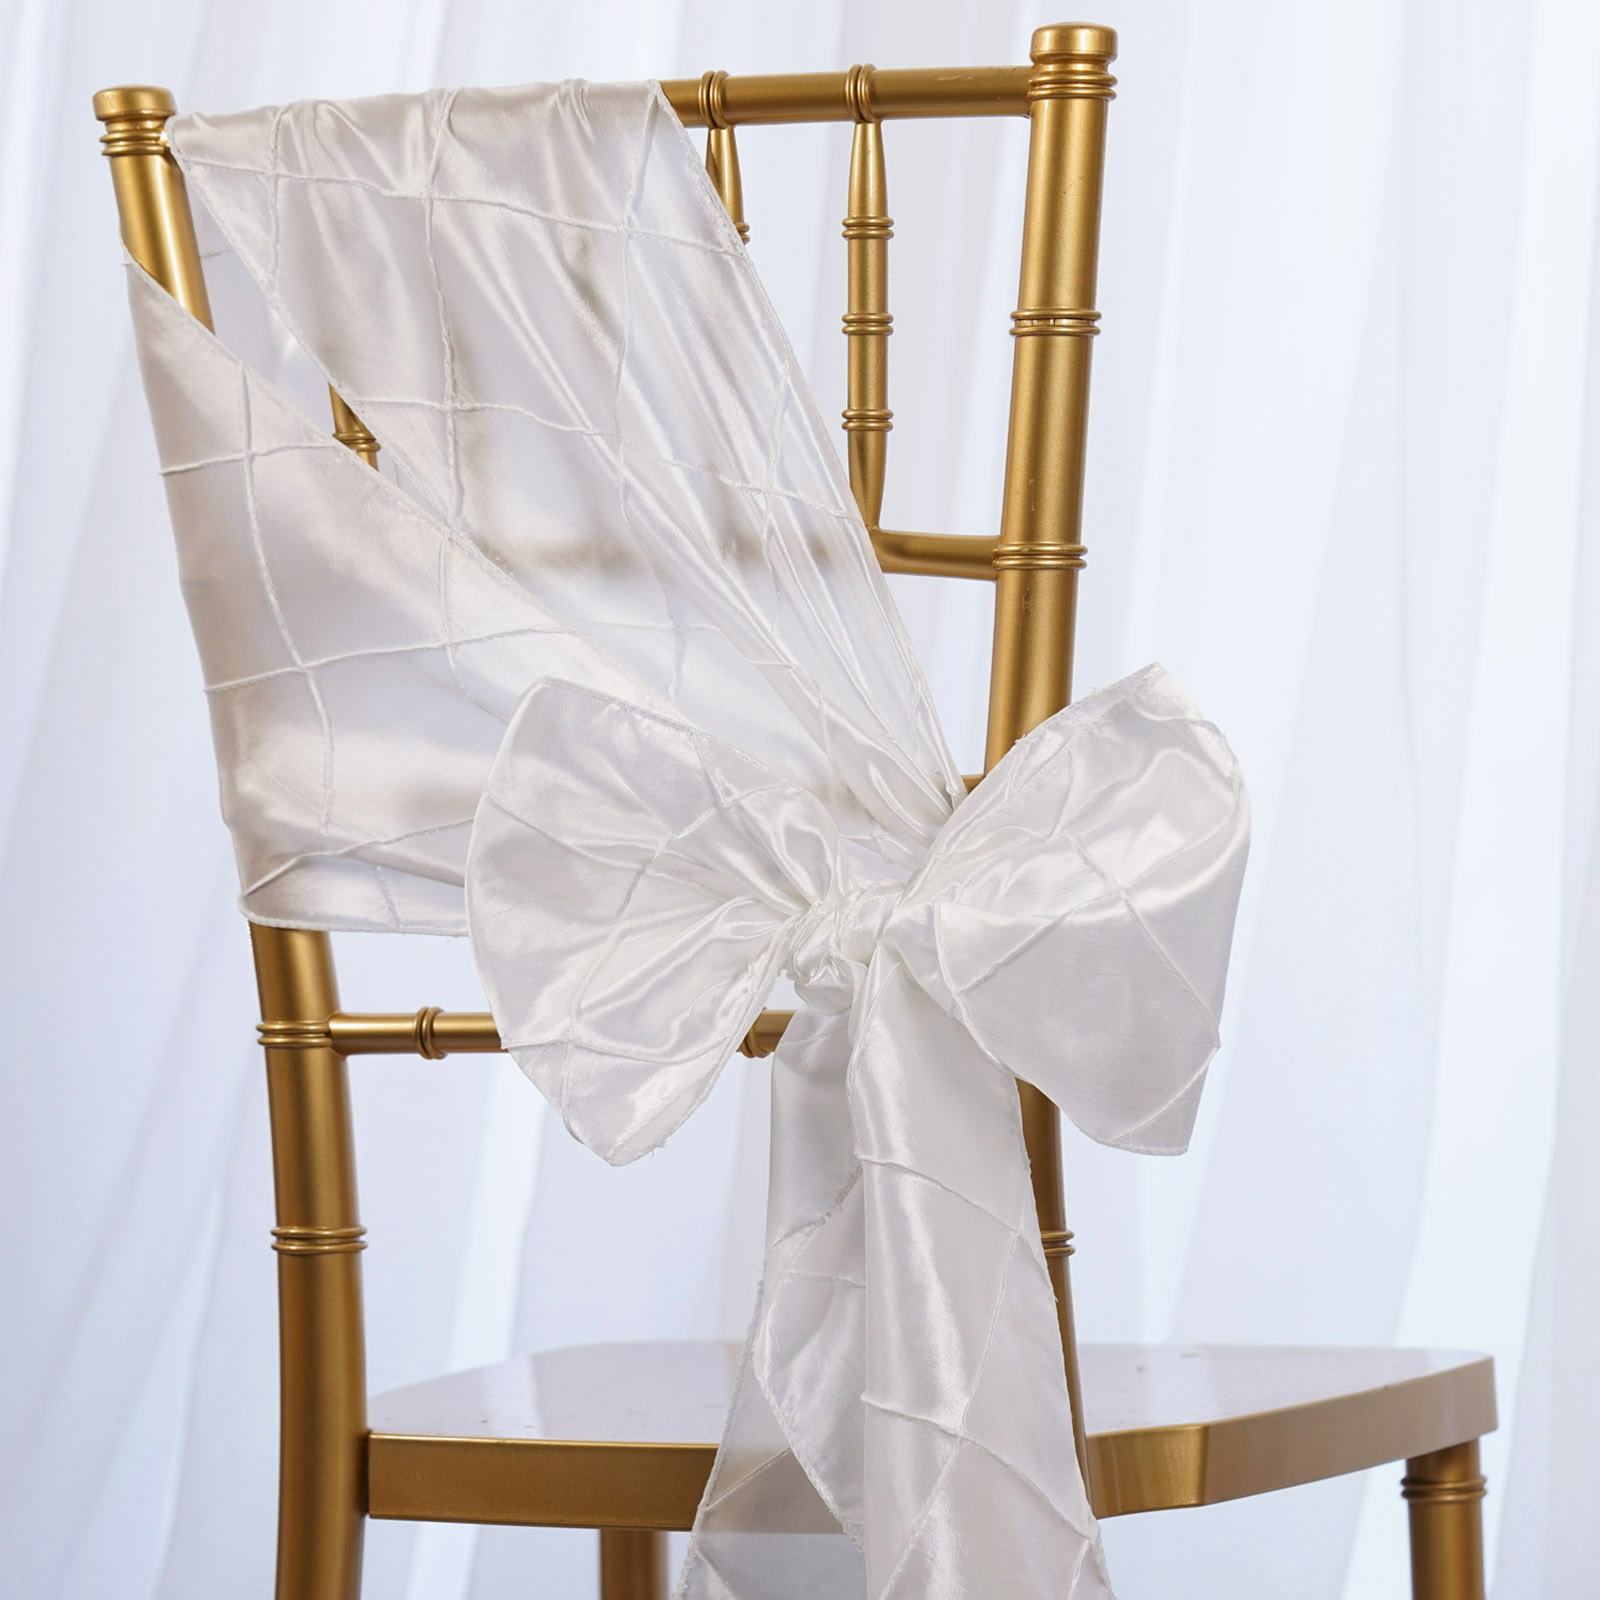 wedding chair sash best after back surgery pintuck sashes bows ties banquet reception